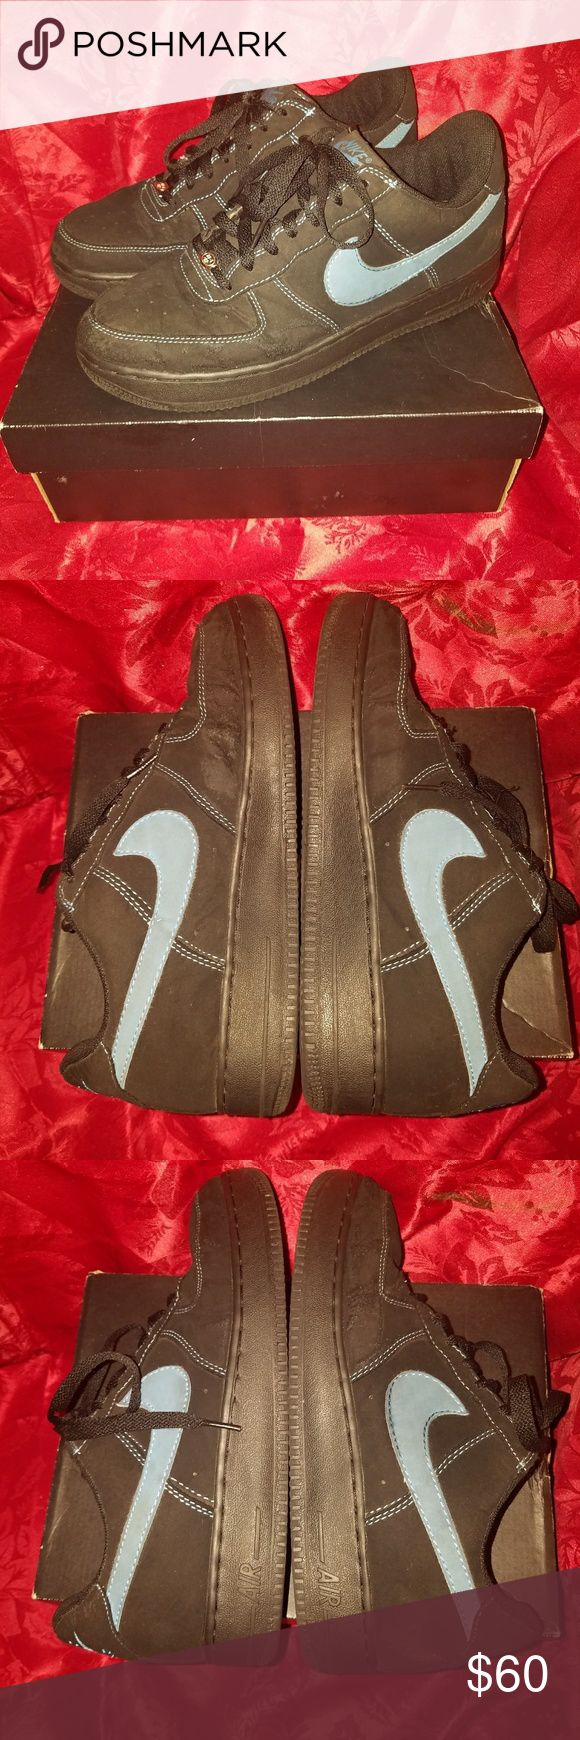 VINTAGE (2006) Mens Jordan Air Force 1 (RARE) 9.5 These are in excellent used condition to be from 2006. Jordan Shoes Sneakers